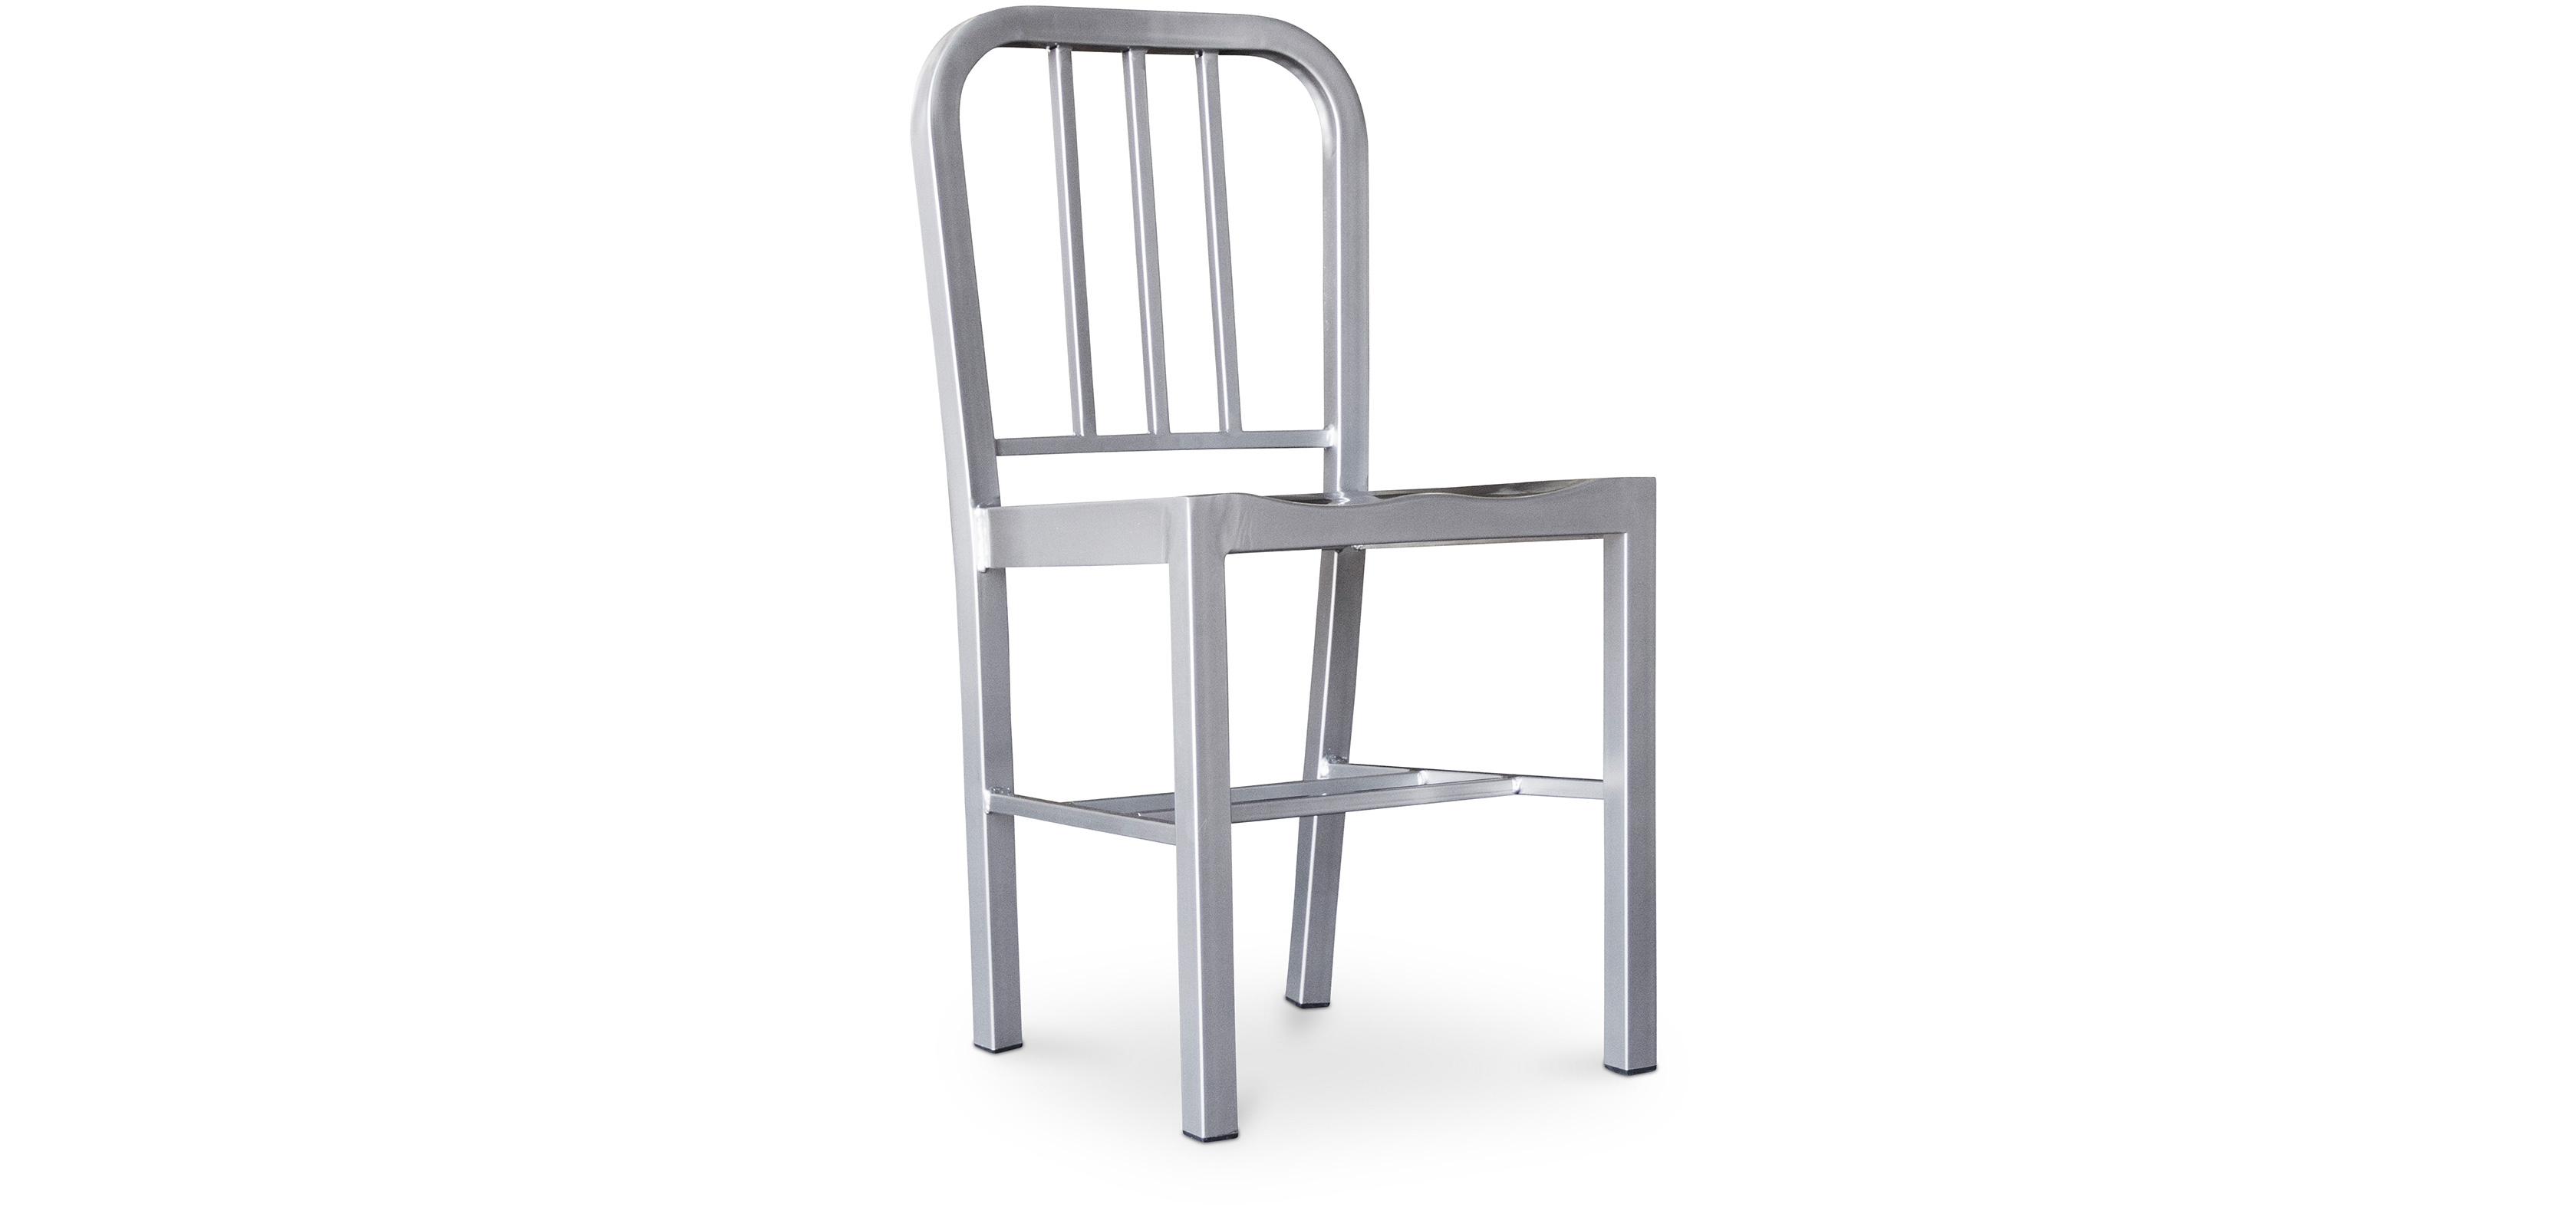 Buy Navy Style Design Chair - Steel Silver 50141 - in the EU